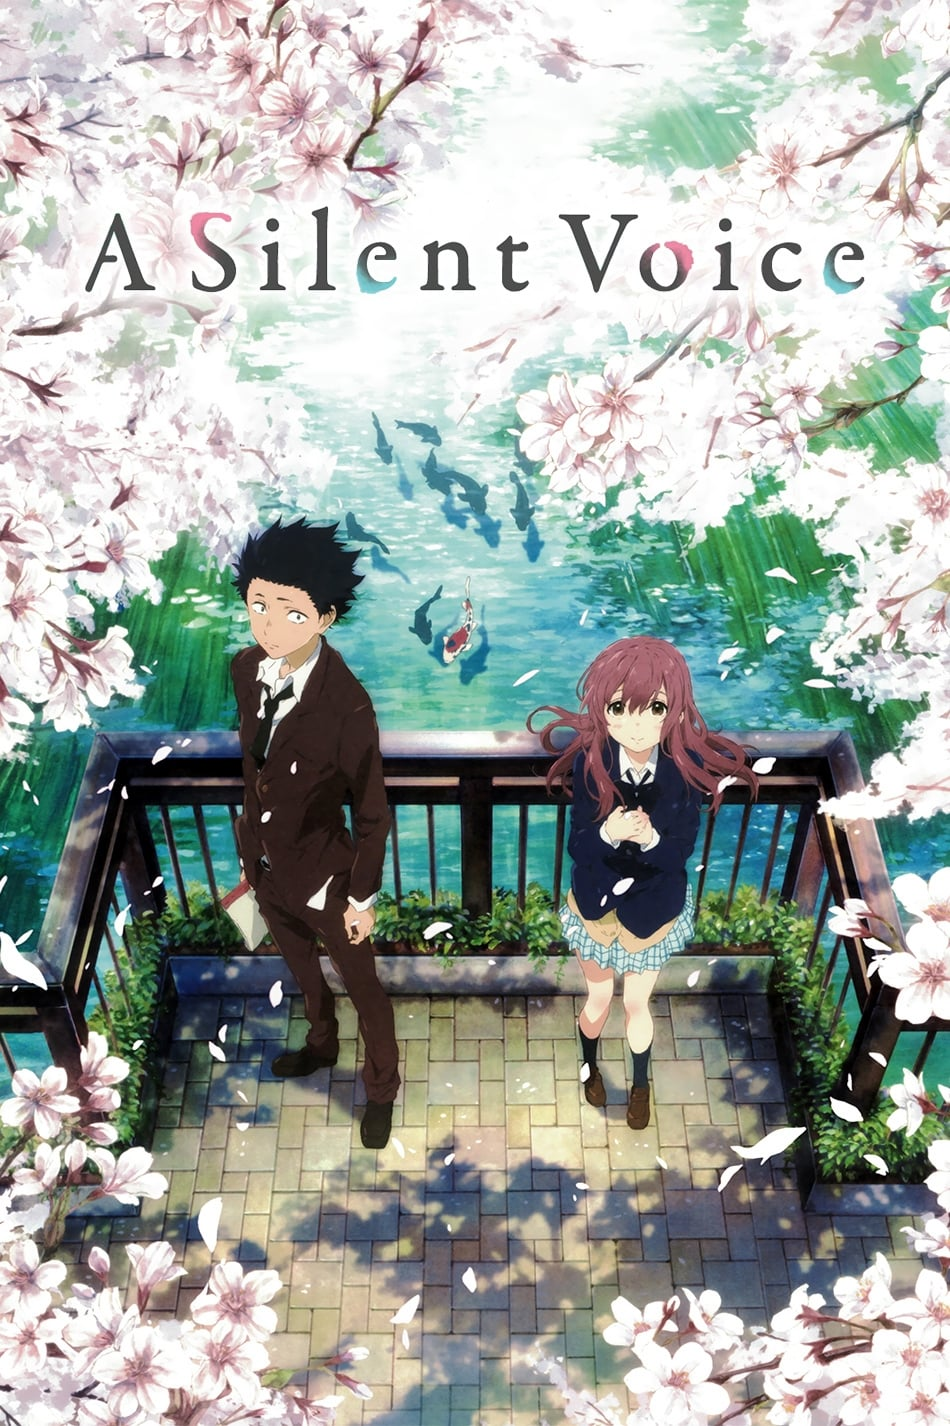 image for A Silent Voice